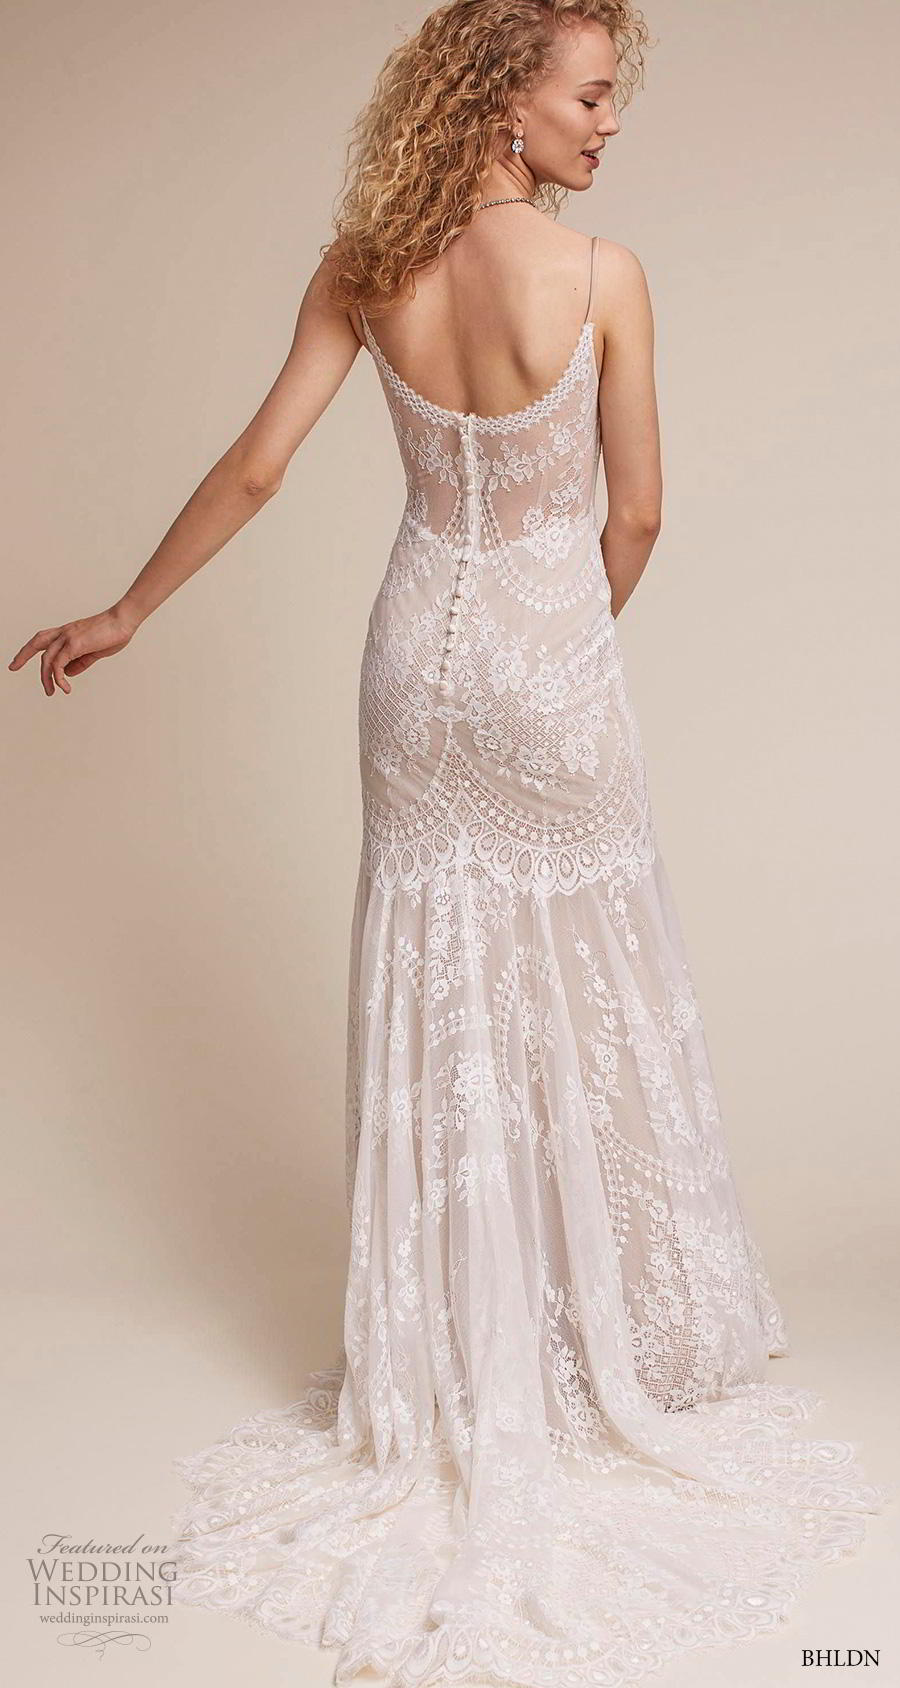 bhldn 2018 own bridal sleeveless thin strap diamond neck full embellishment bohemian vintage column sheath wedding dress mid back short train (7) bv